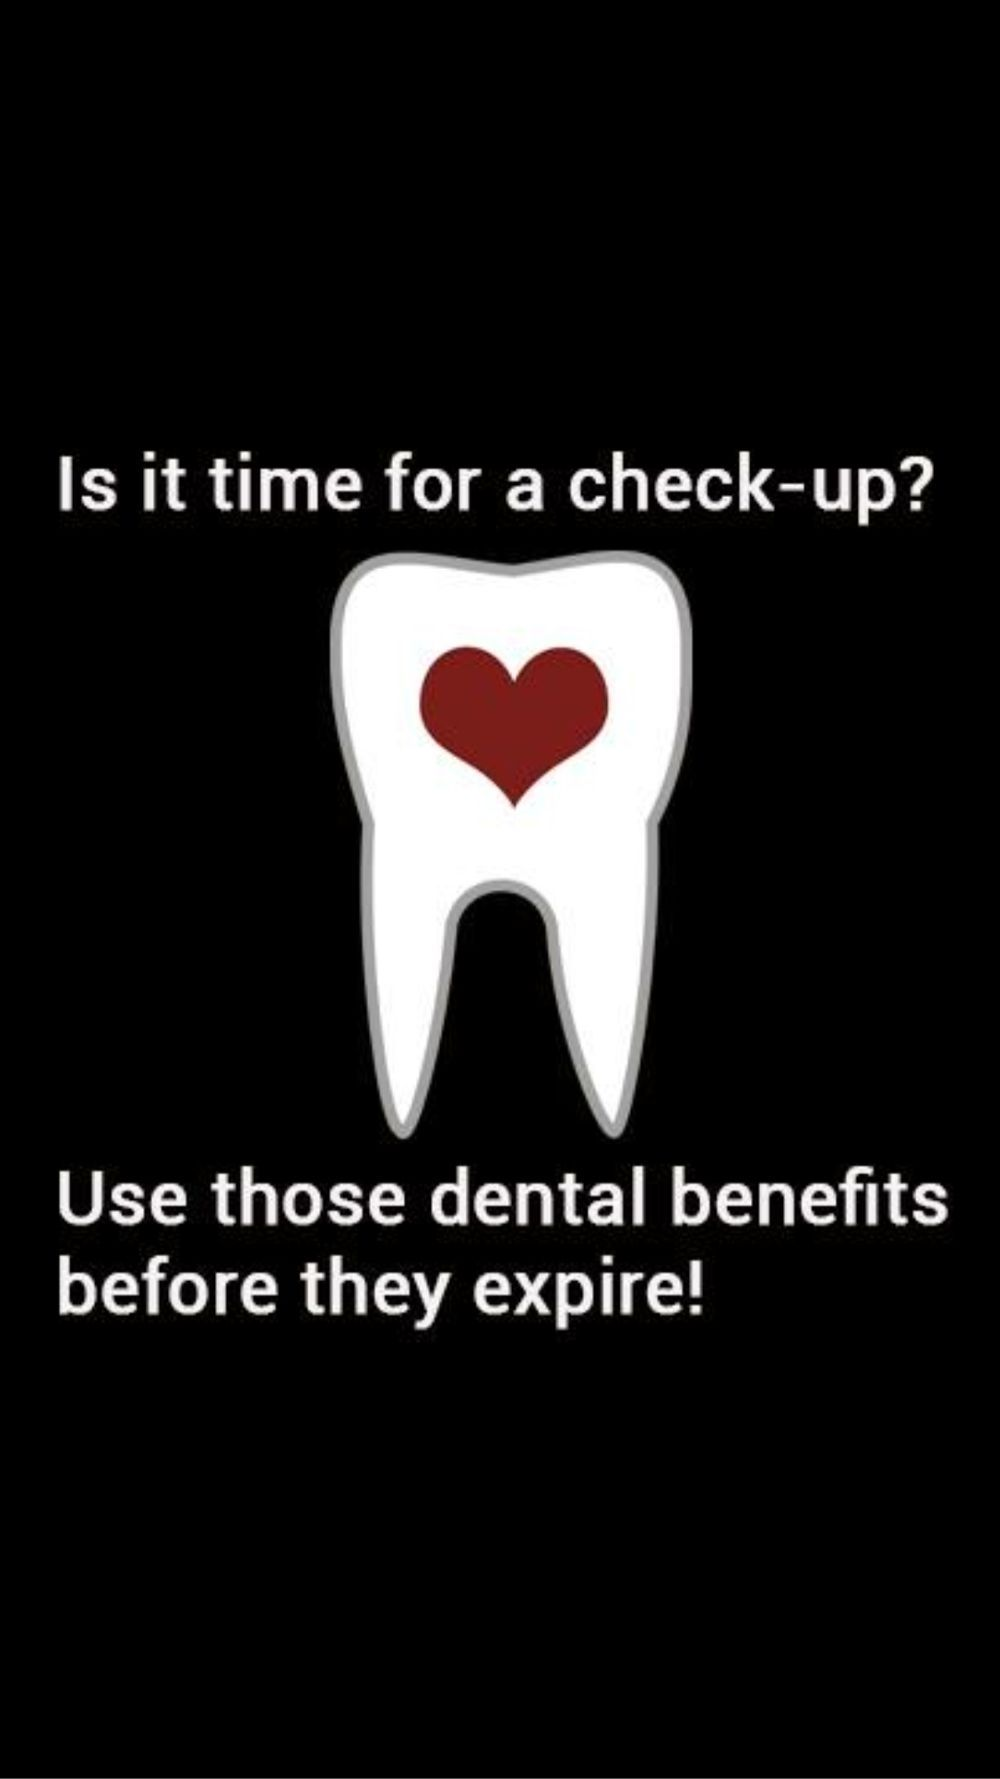 USE IT OR LOOSE IT DENTAL BENEFITS DONT HAVE INSURANCE